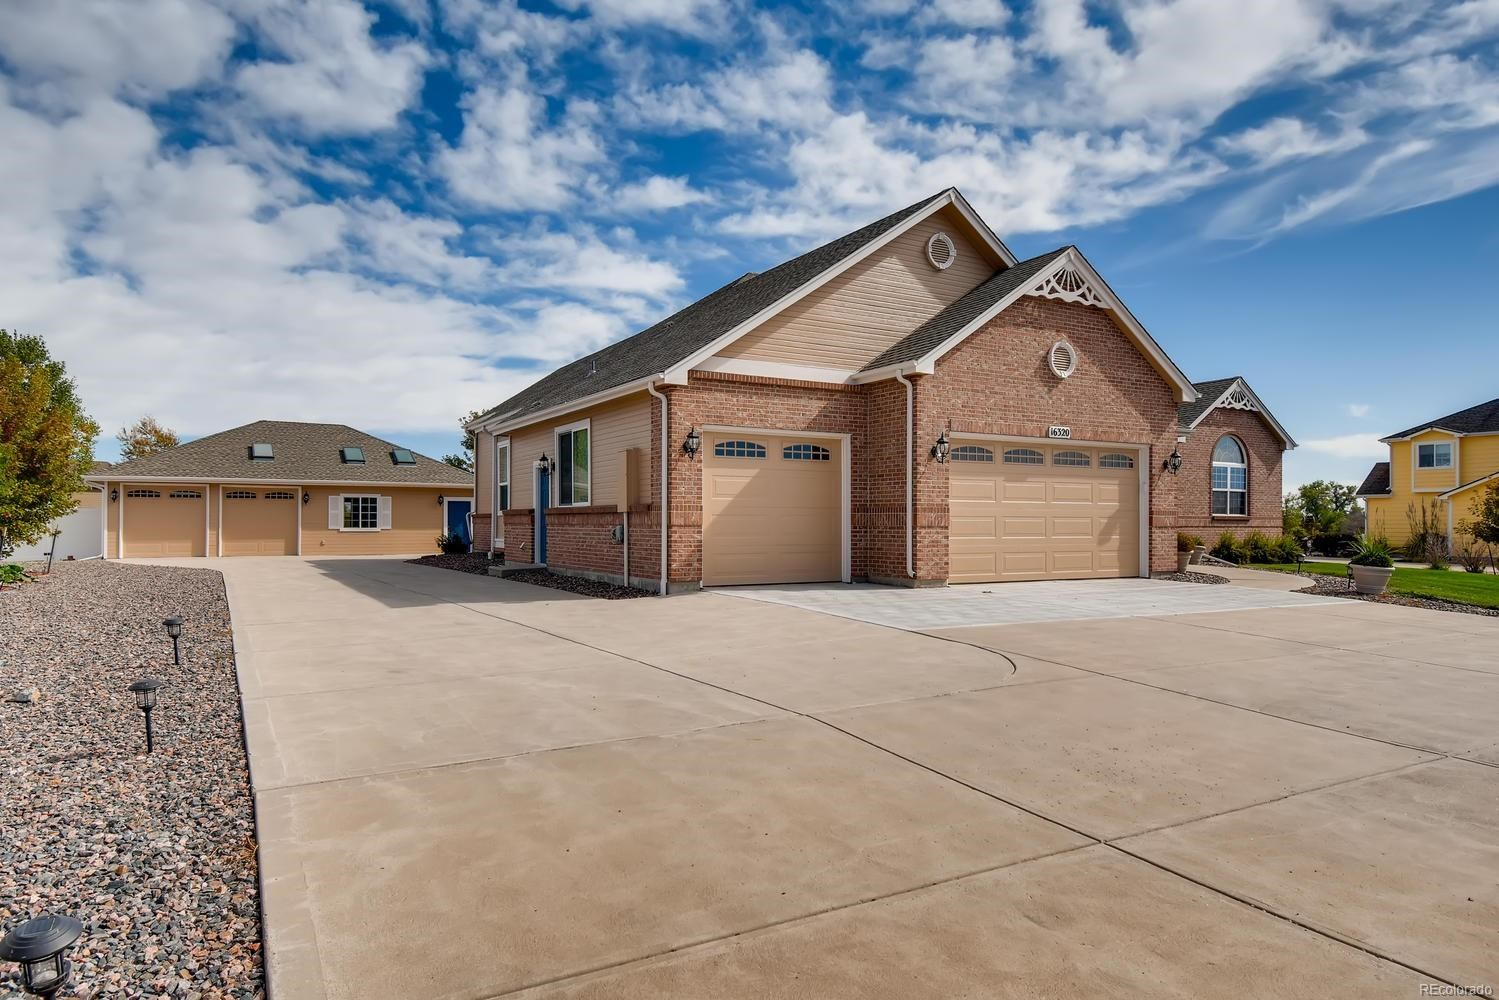 MLS# 6605938 - 1 - 16320 Timber Cove Street, Hudson, CO 80642